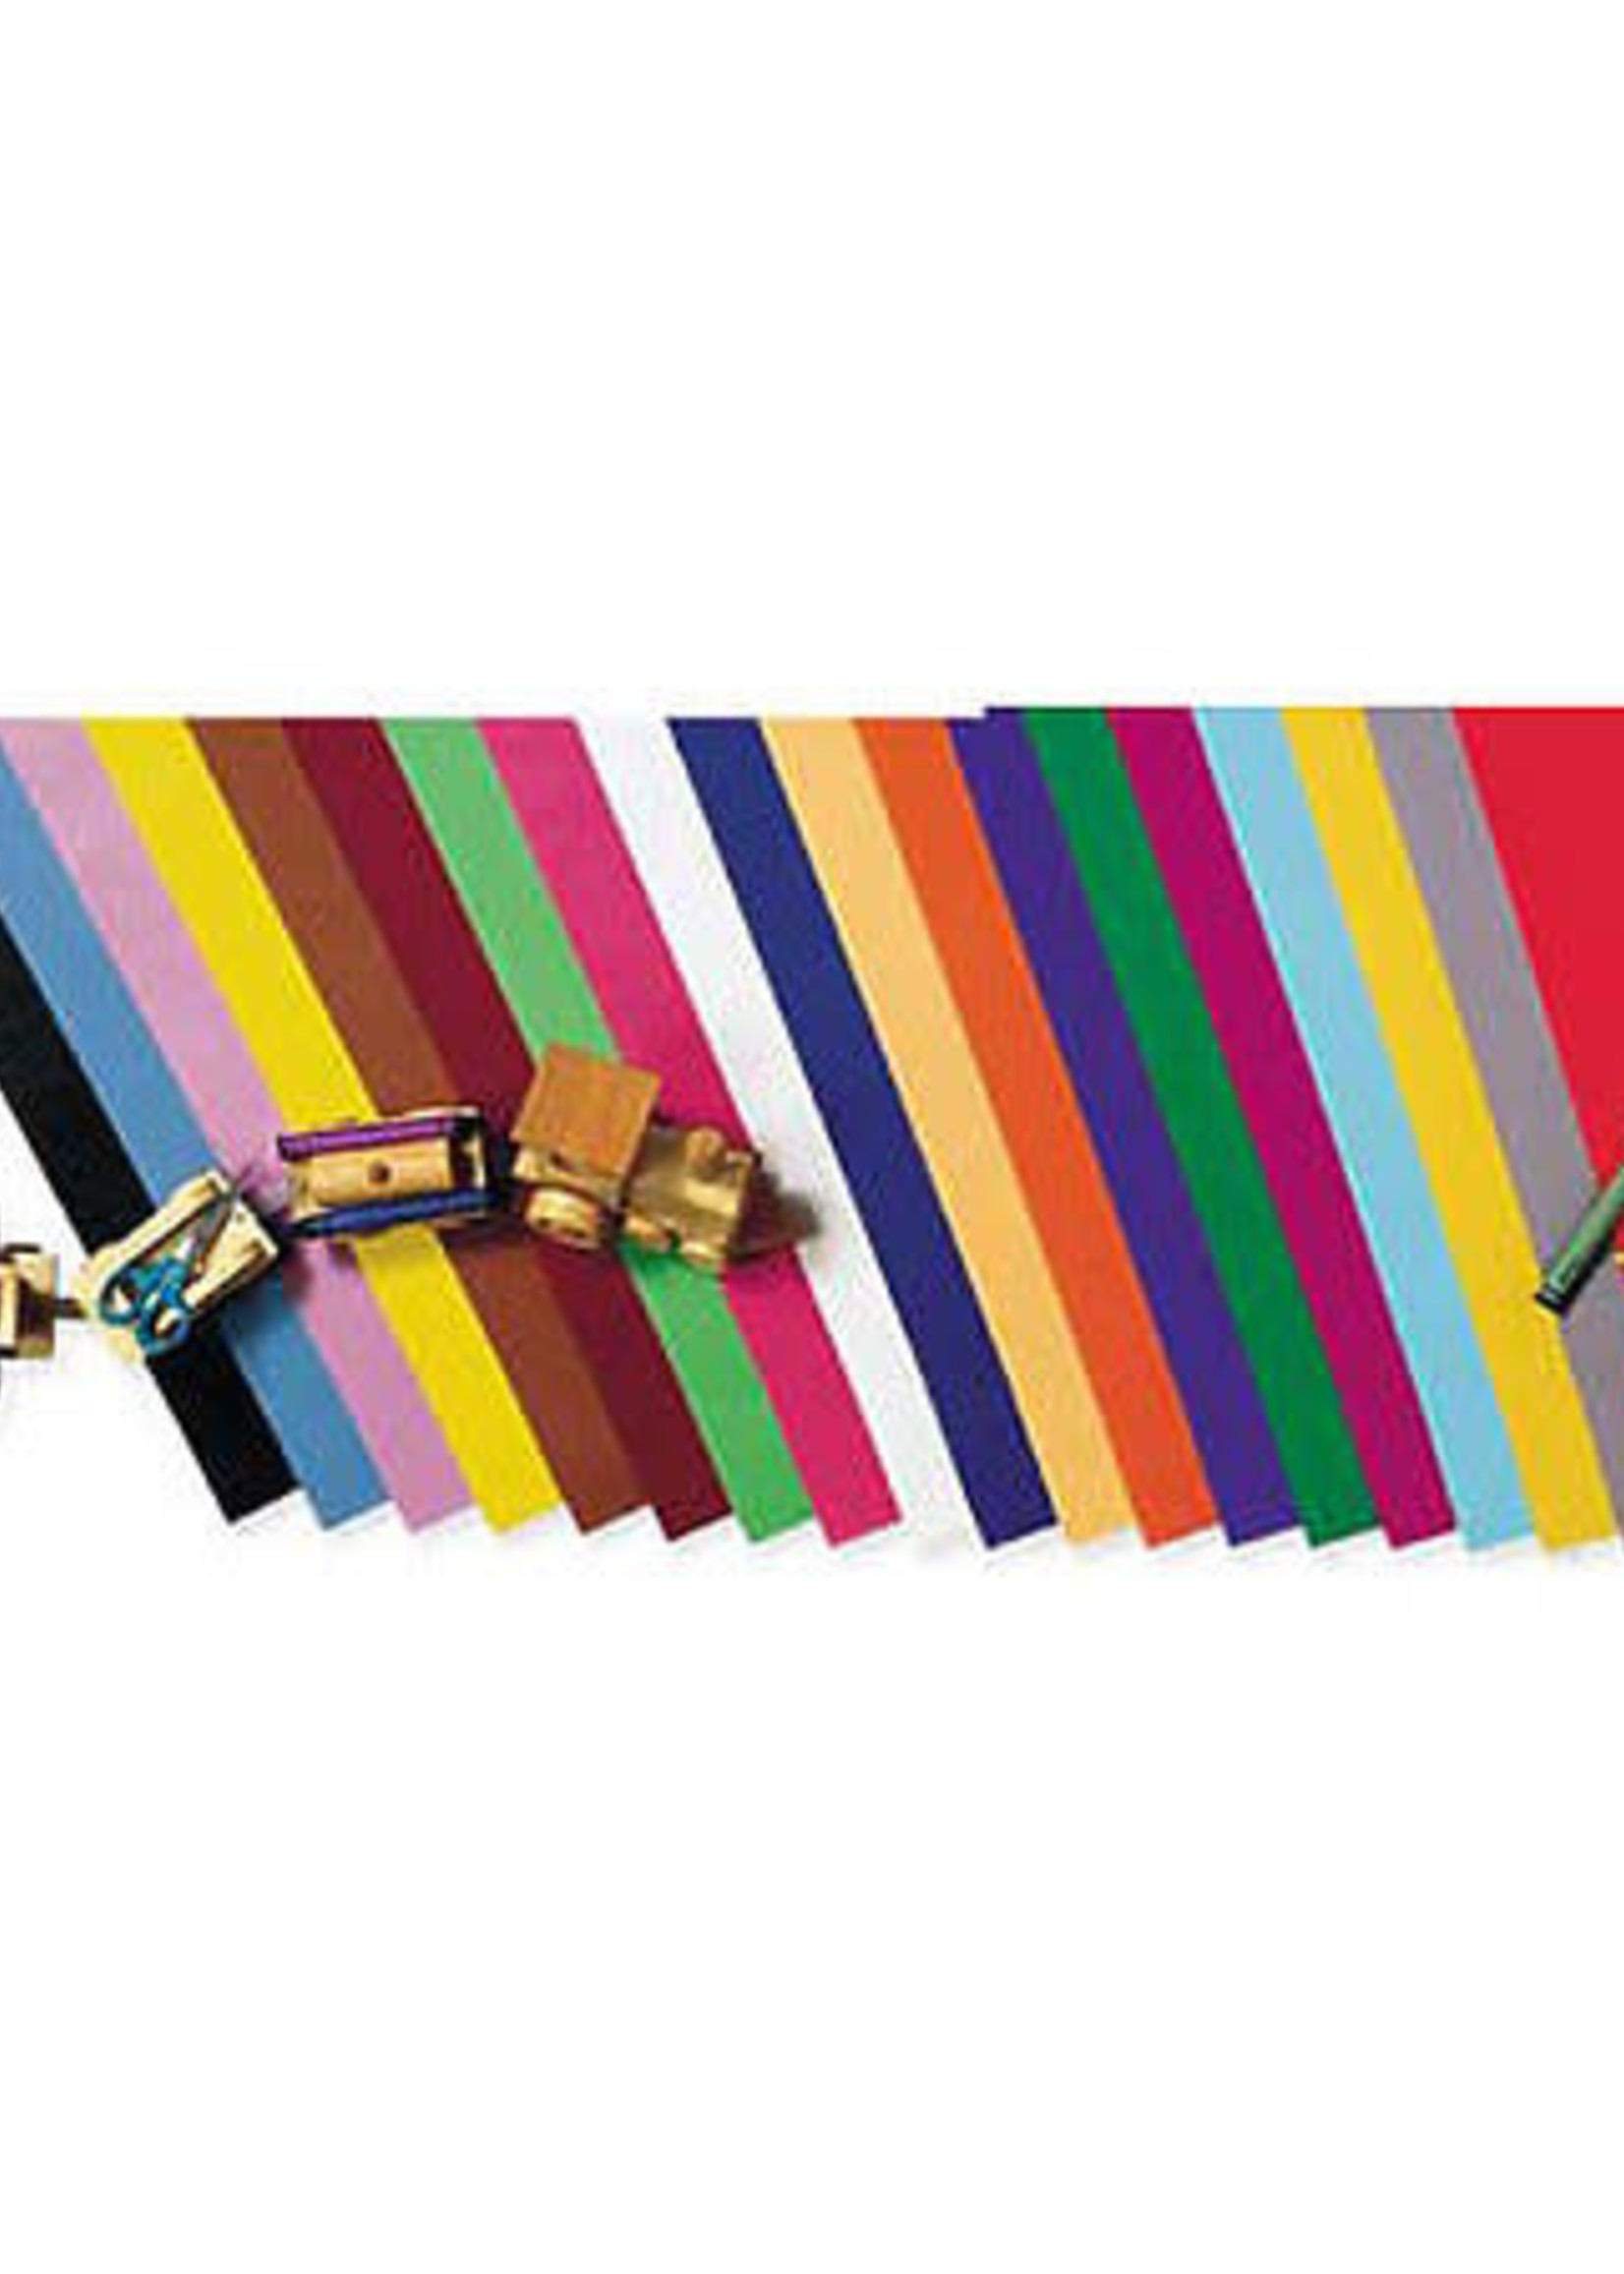 PACON/STRATHMORE RAILROAD BOARD 6PLY 22X28 25 SHEETS